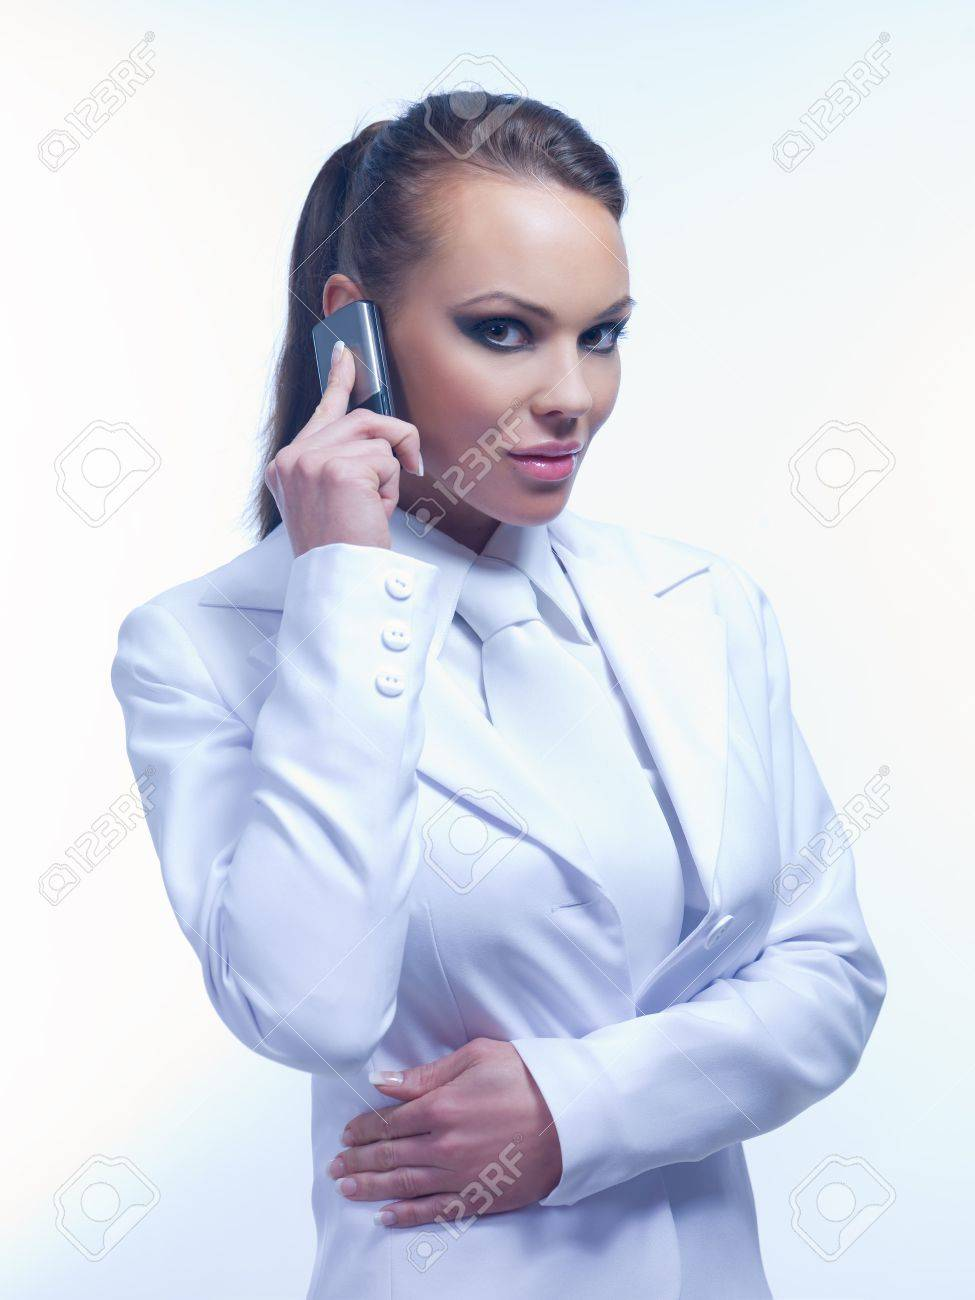 Portrait of Urban Business woman wearing white suit Stock Photo - 5489004